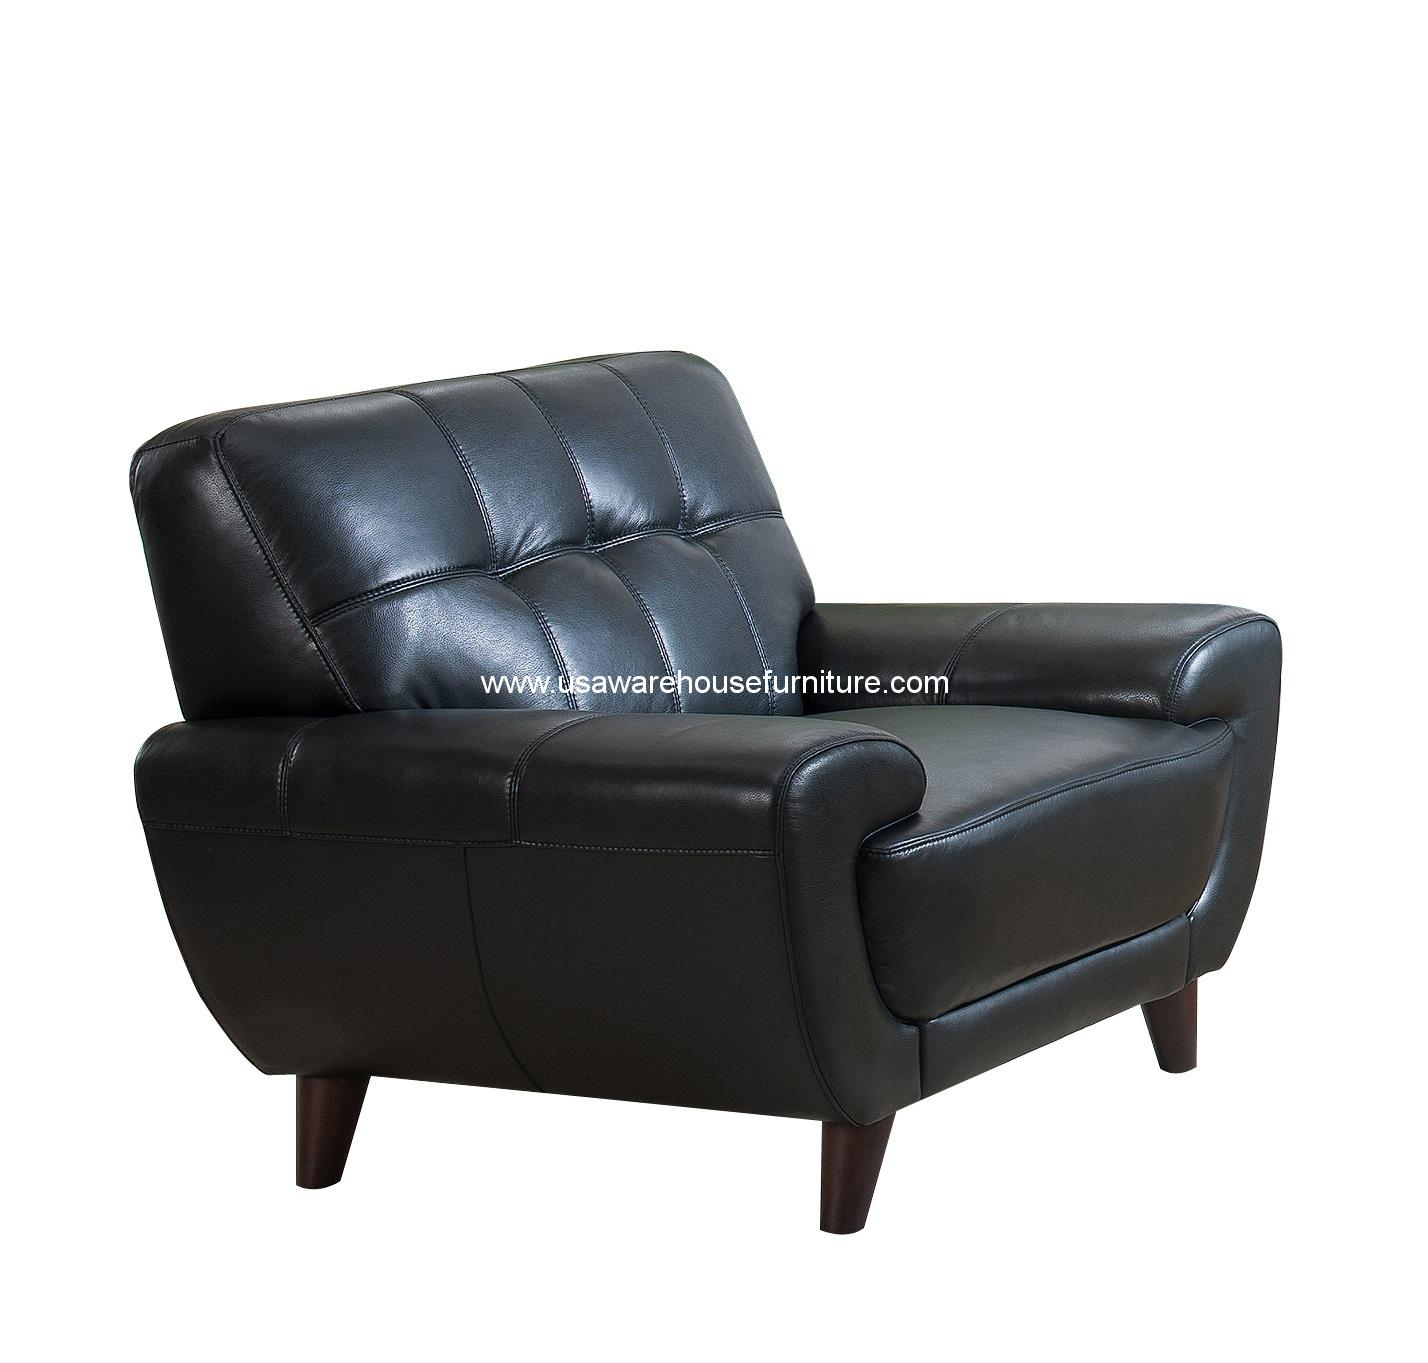 nicole black full top grain leather chair usa warehouse furniture. Black Bedroom Furniture Sets. Home Design Ideas